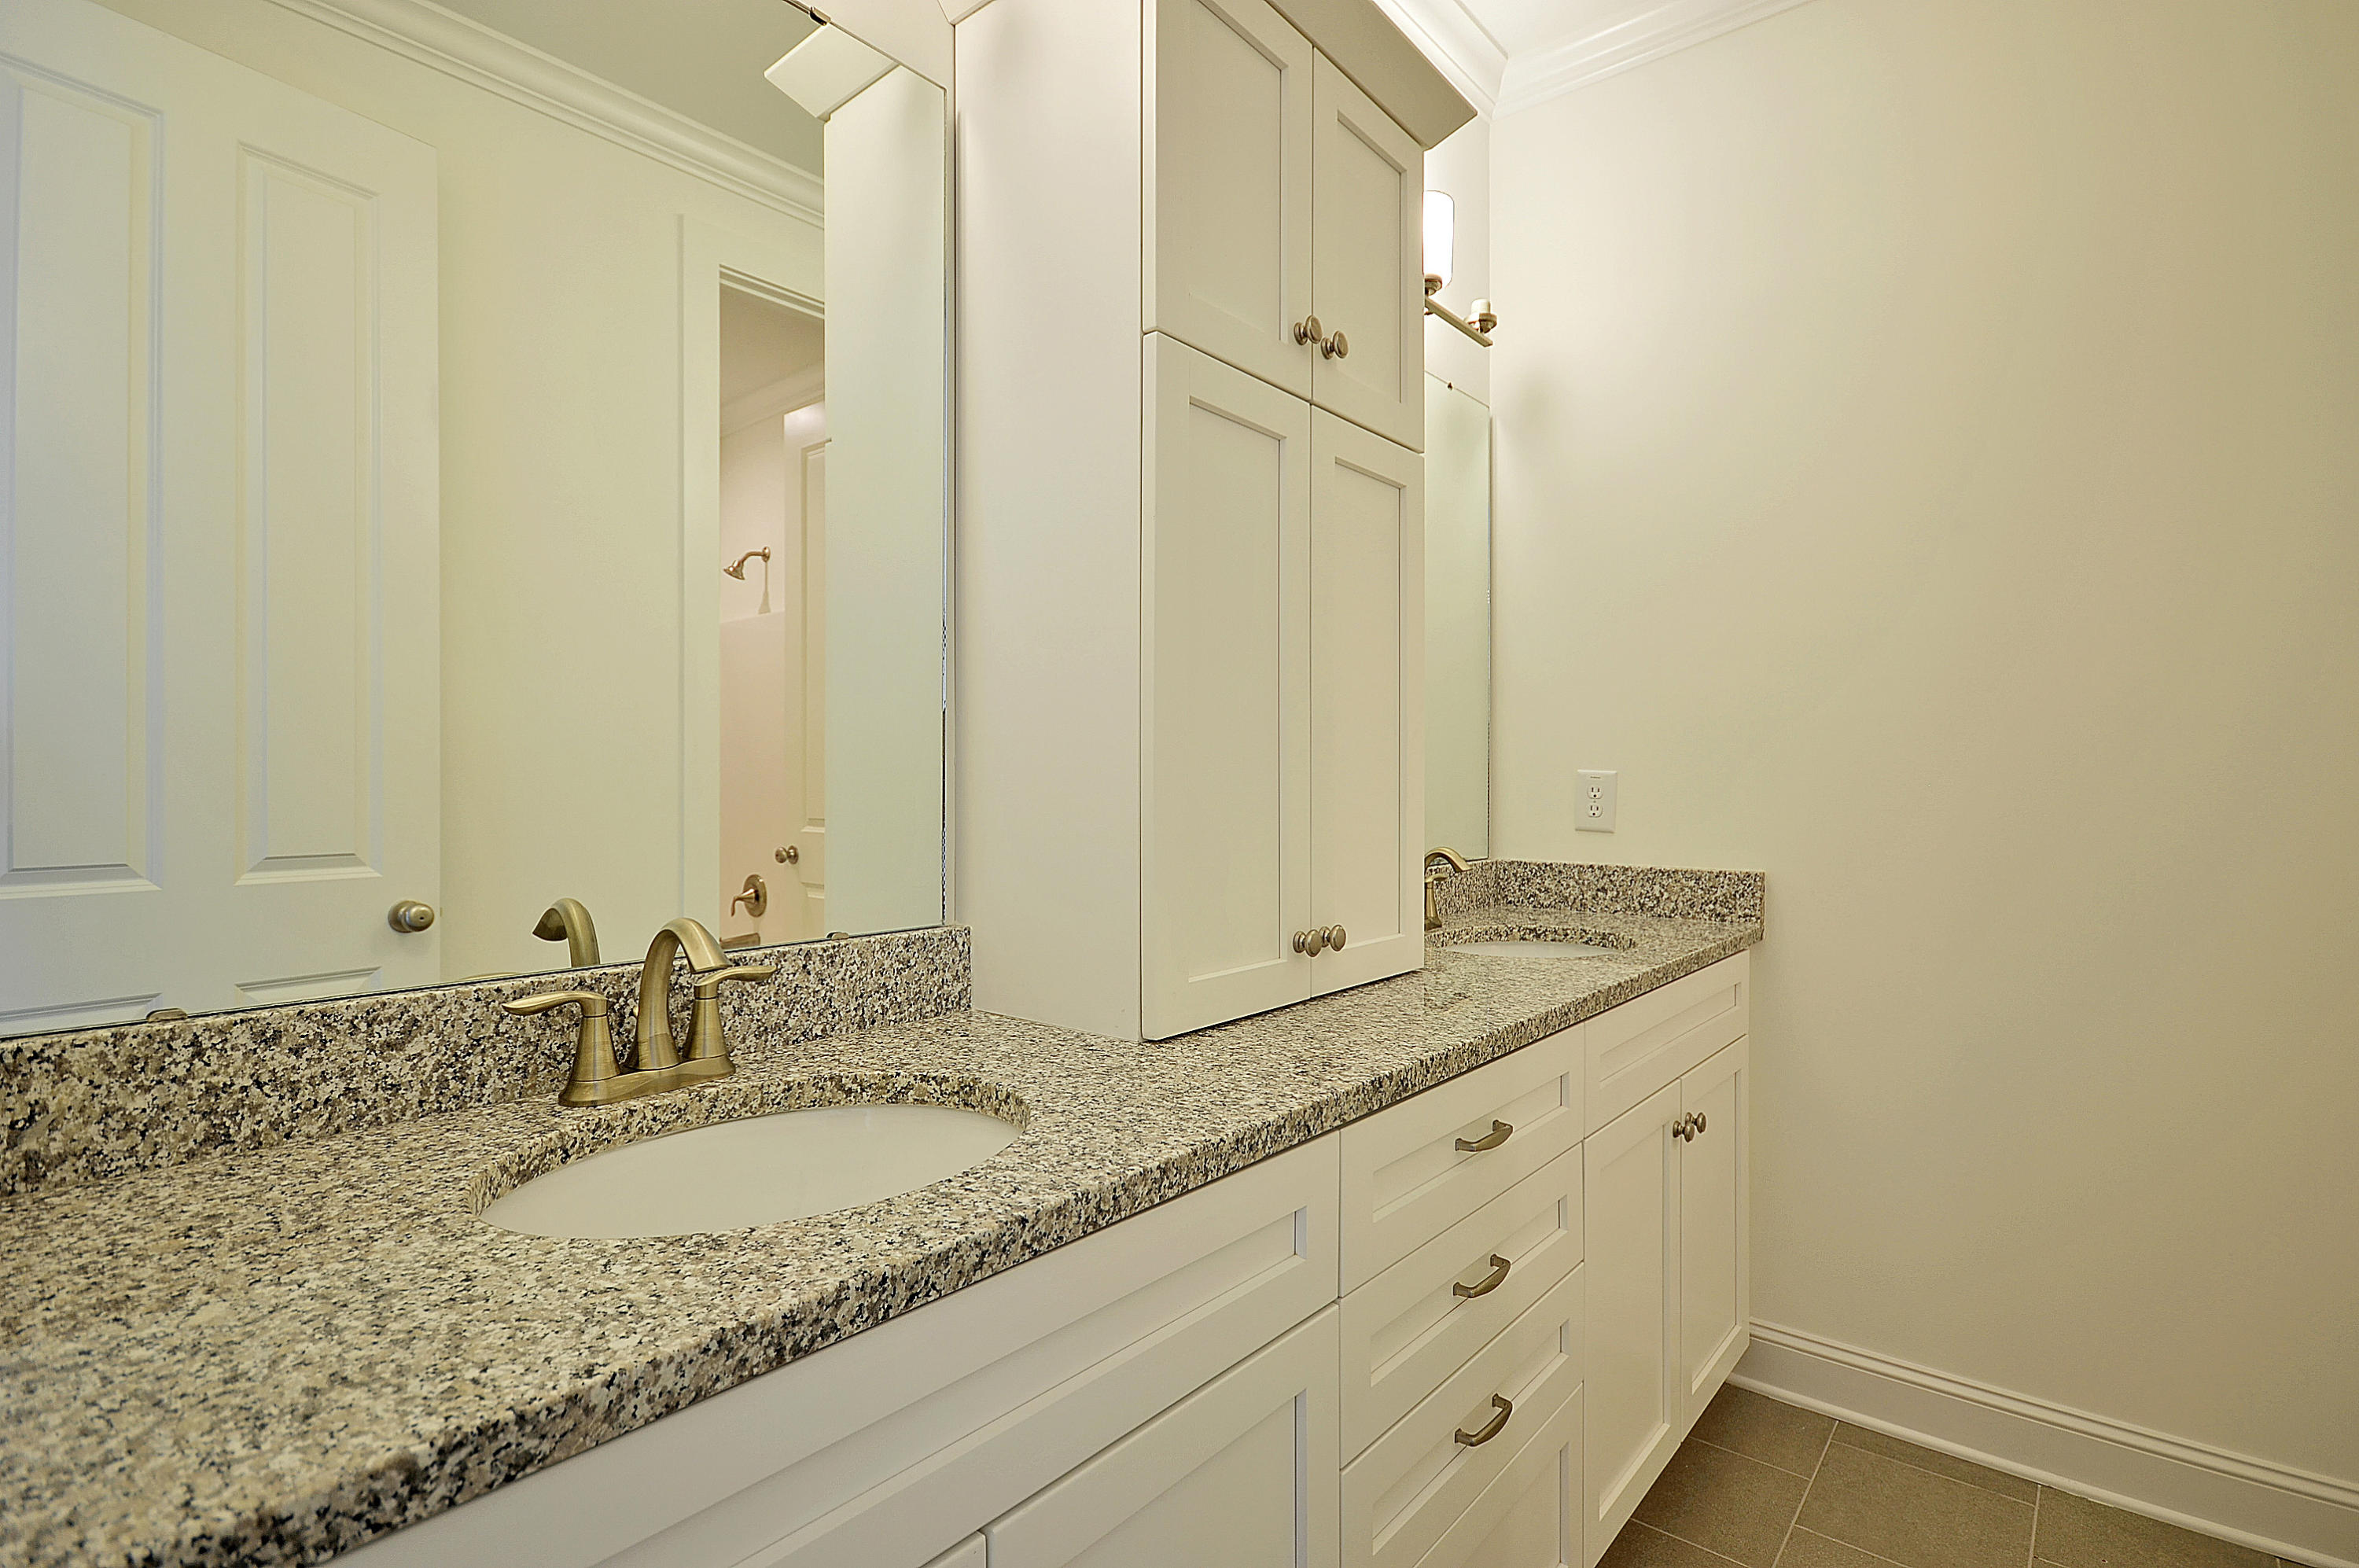 Poplar Grove Homes For Sale - 4035 Capensis, Hollywood, SC - 53